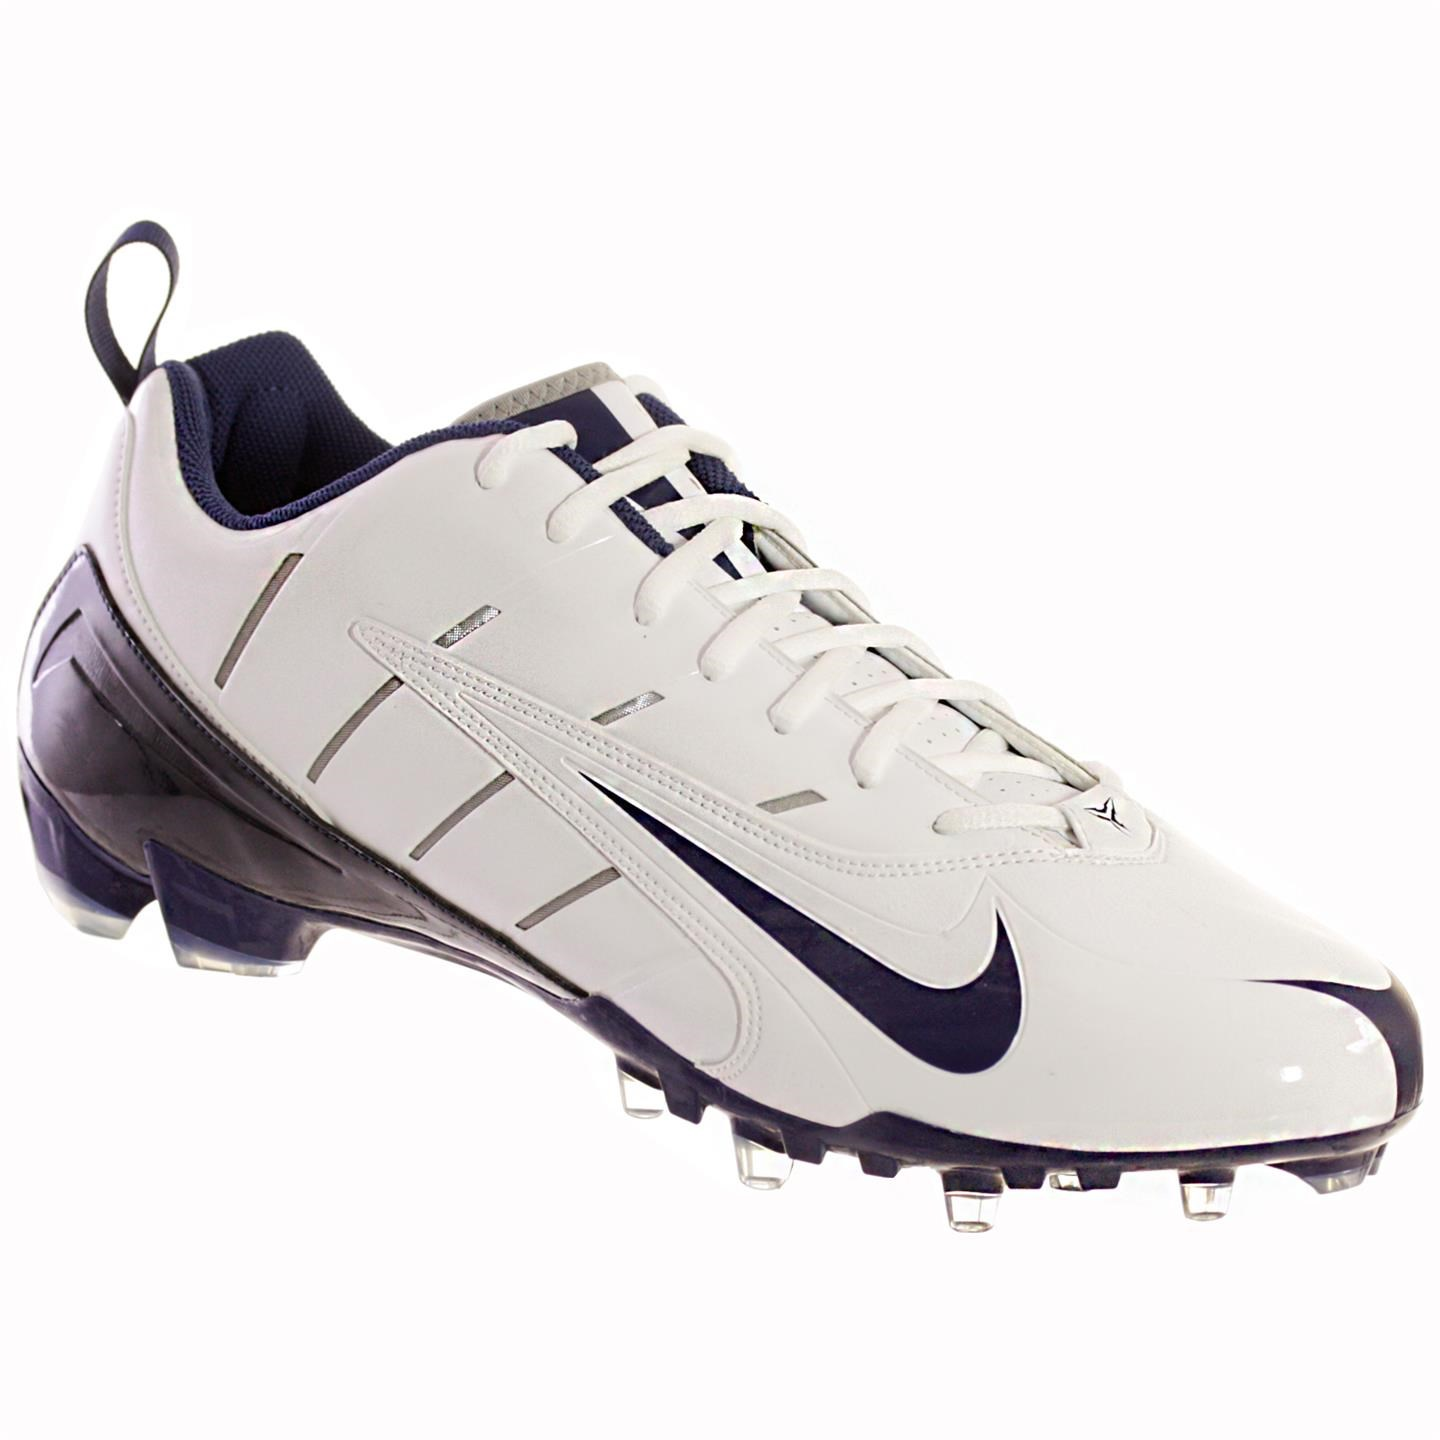 Nike SPEED TD Mens 15 Football Shoes White Navy 15 Mens M 7d5a2d